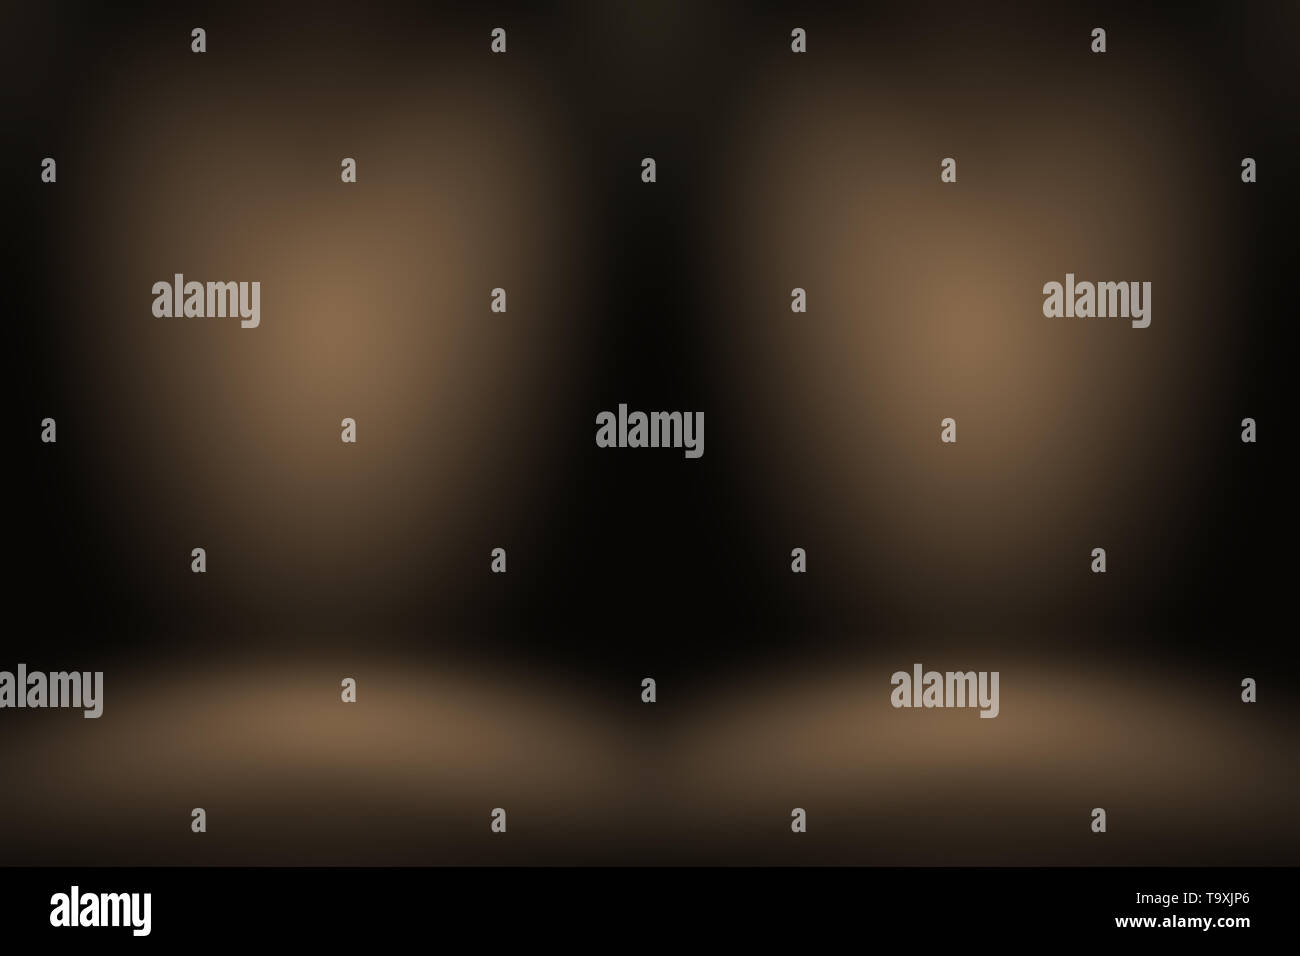 Abstract Smooth Brown wall background layout design,studio,room,web template,Business report with smooth circle gradient color. - Stock Image